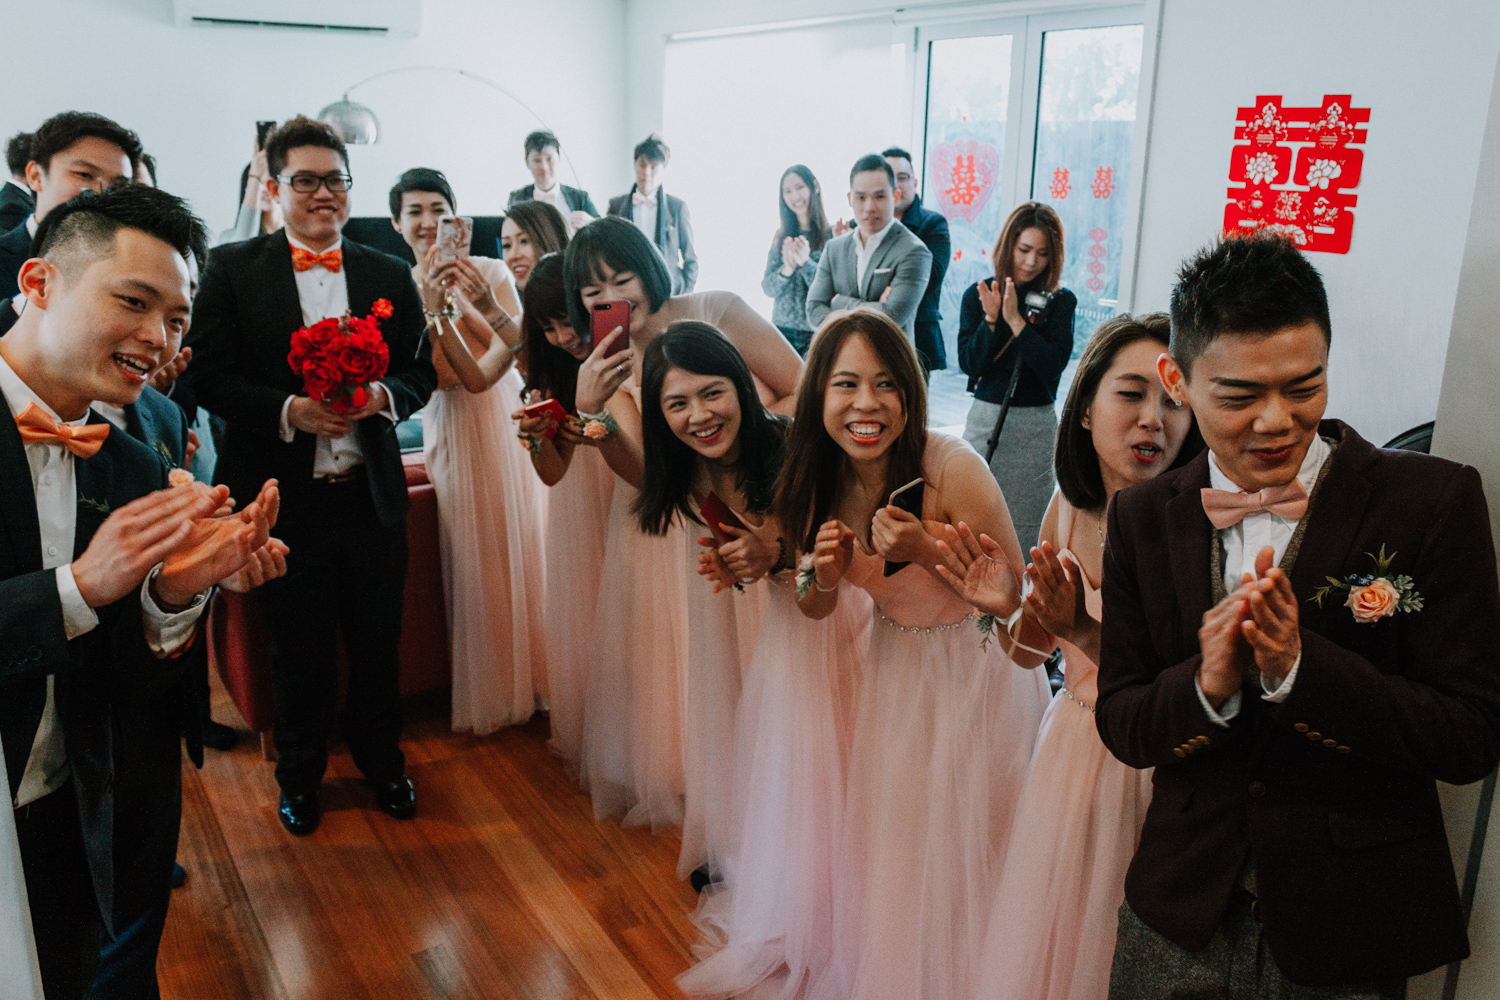 bridal party welcome newly wedded husband wife to wedding reception natural wedding photo moment taken by Melbourne wedding photographer Black Avenue Productions